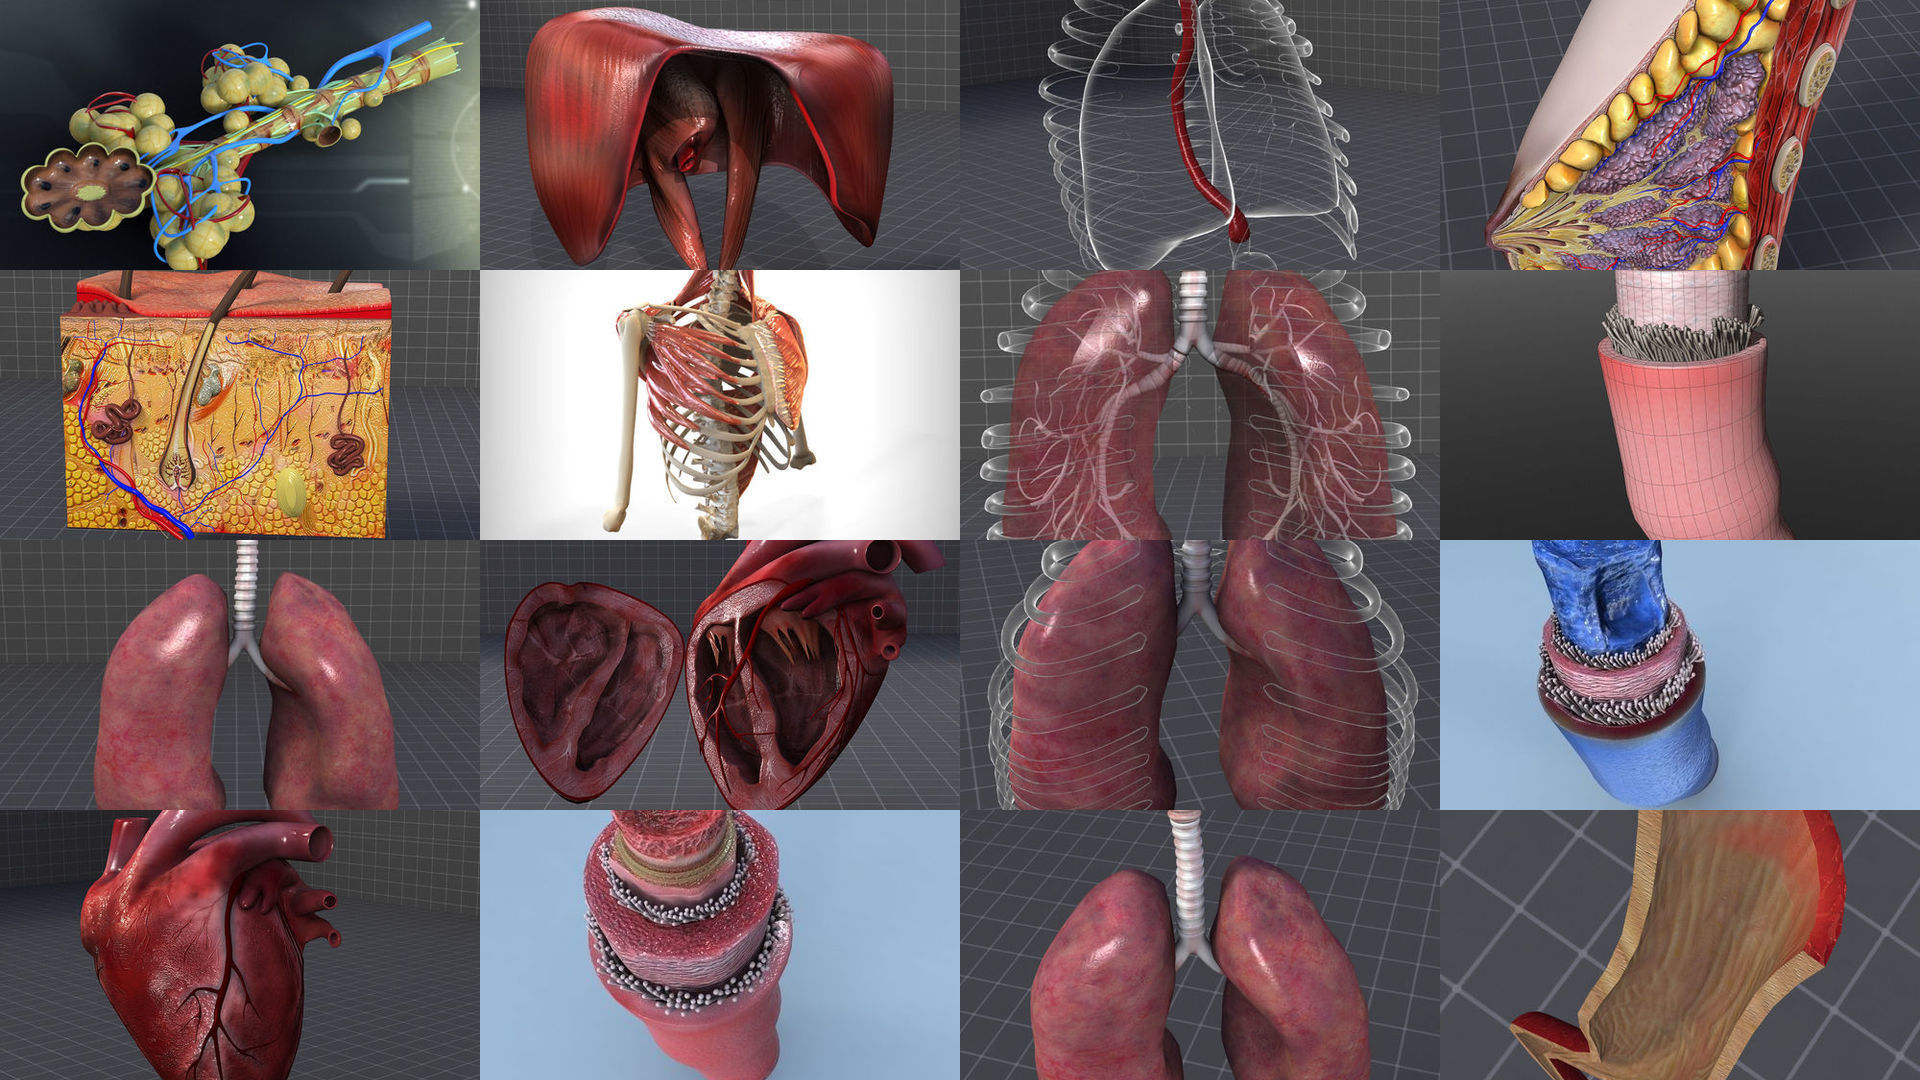 Cervical and Thoracic Anatomy Collection - Neck and Chest